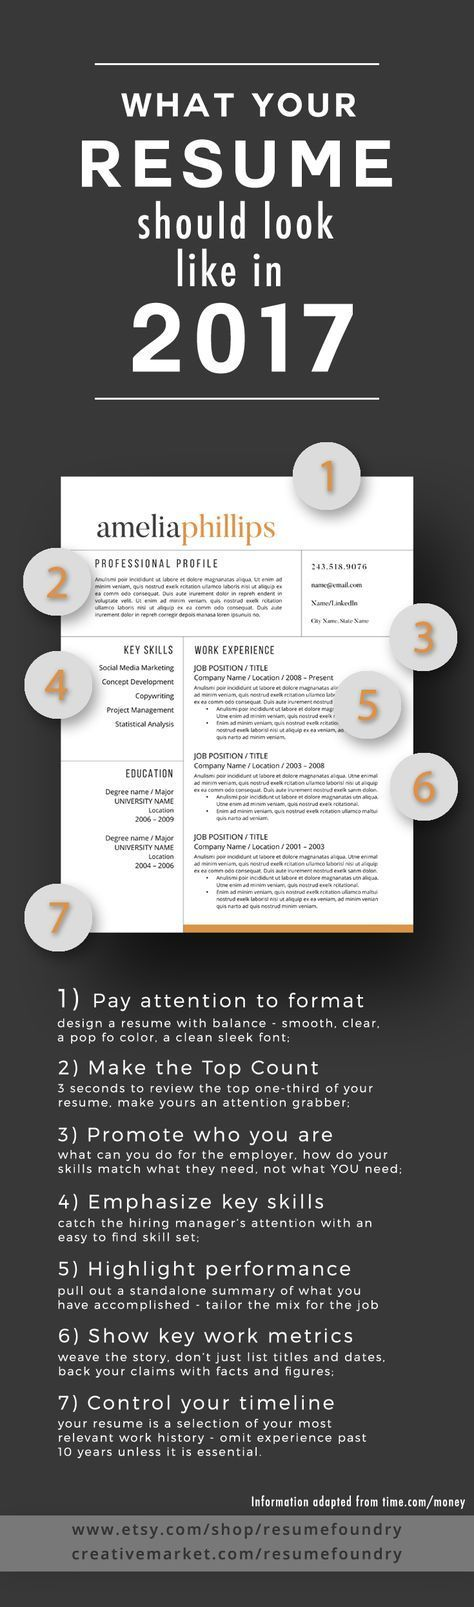 7 tips to transform your resume to 2017 Check out the article at - how to perfect your resume